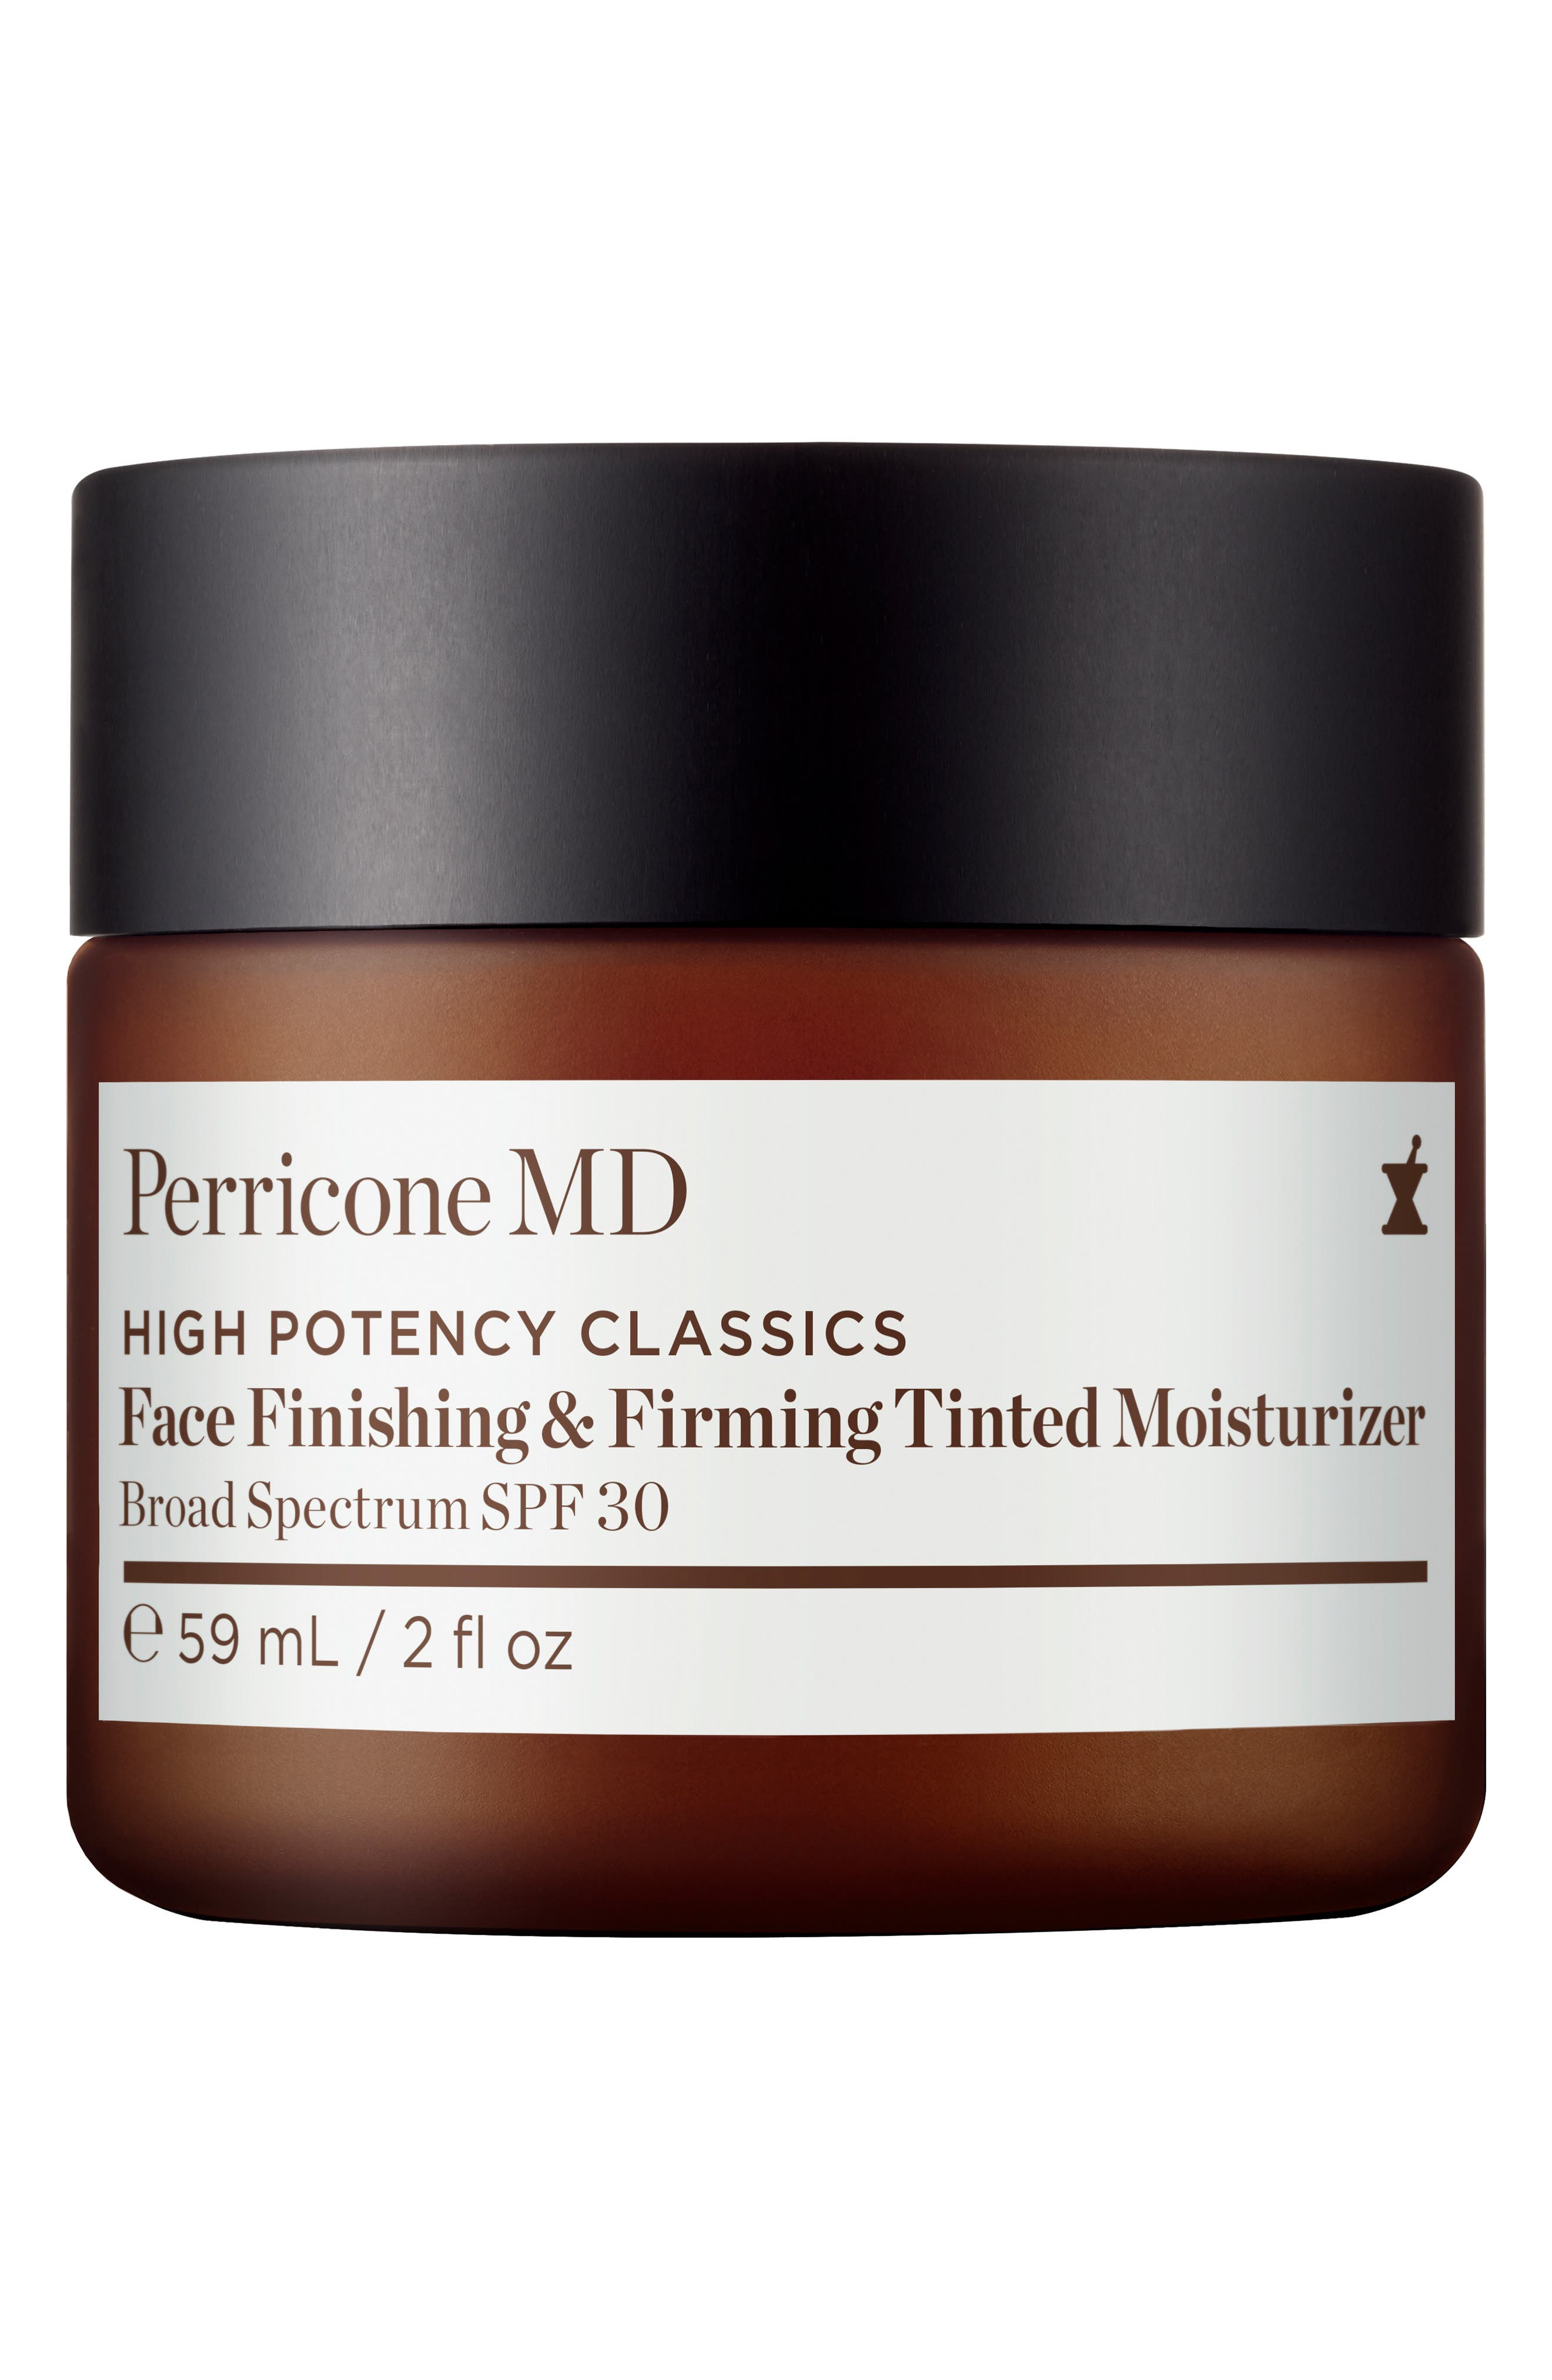 High Potency Classic Face Finishing & Firming Moisturizer Tint SPF 30,                             Main thumbnail 1, color,                             NO COLOR